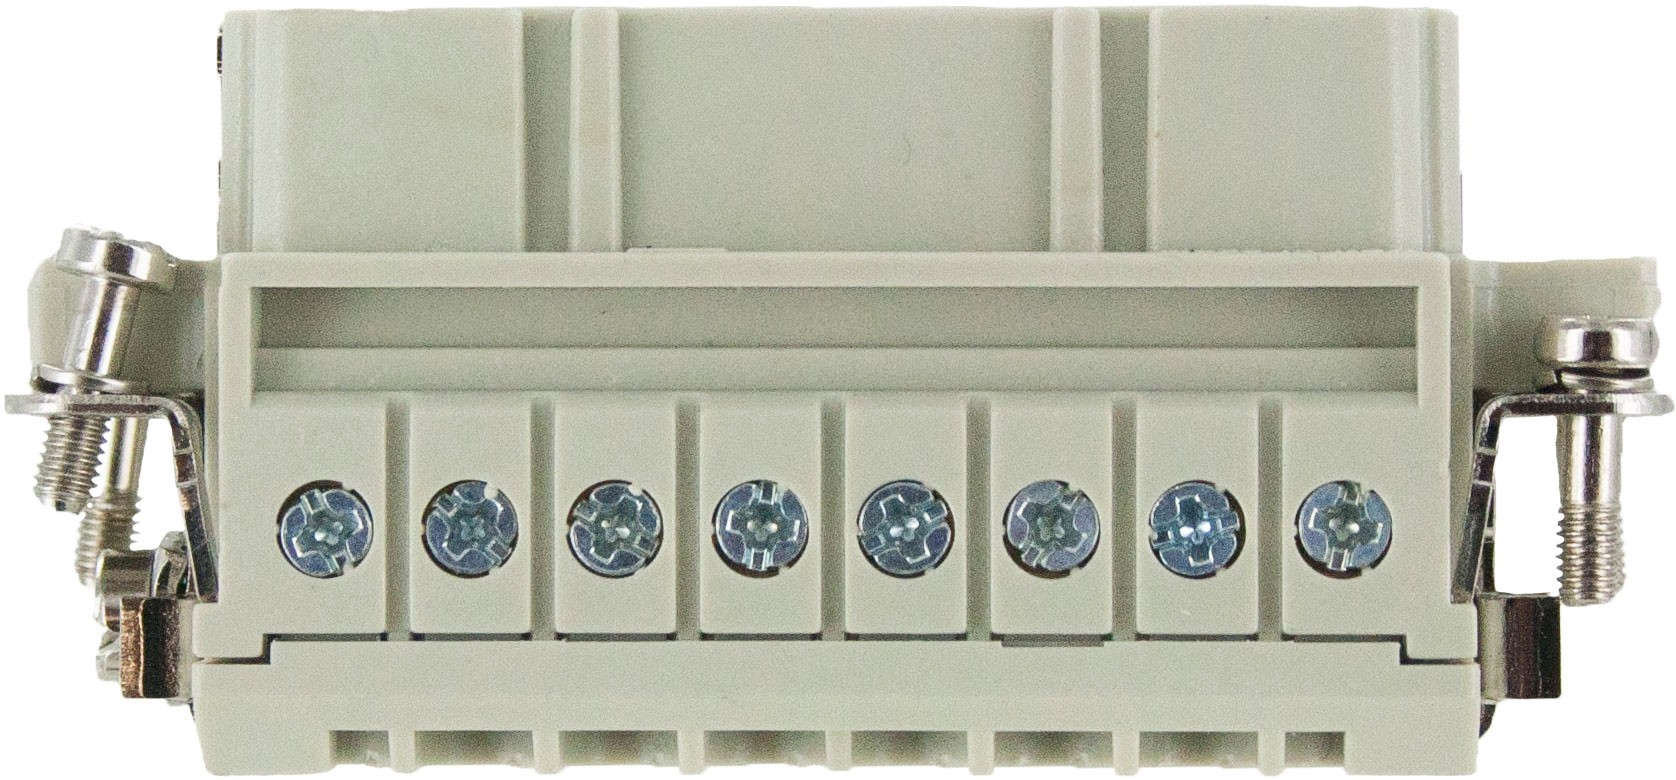 Screw In or Push In Wire Shelving Pole Inserts 4 pack